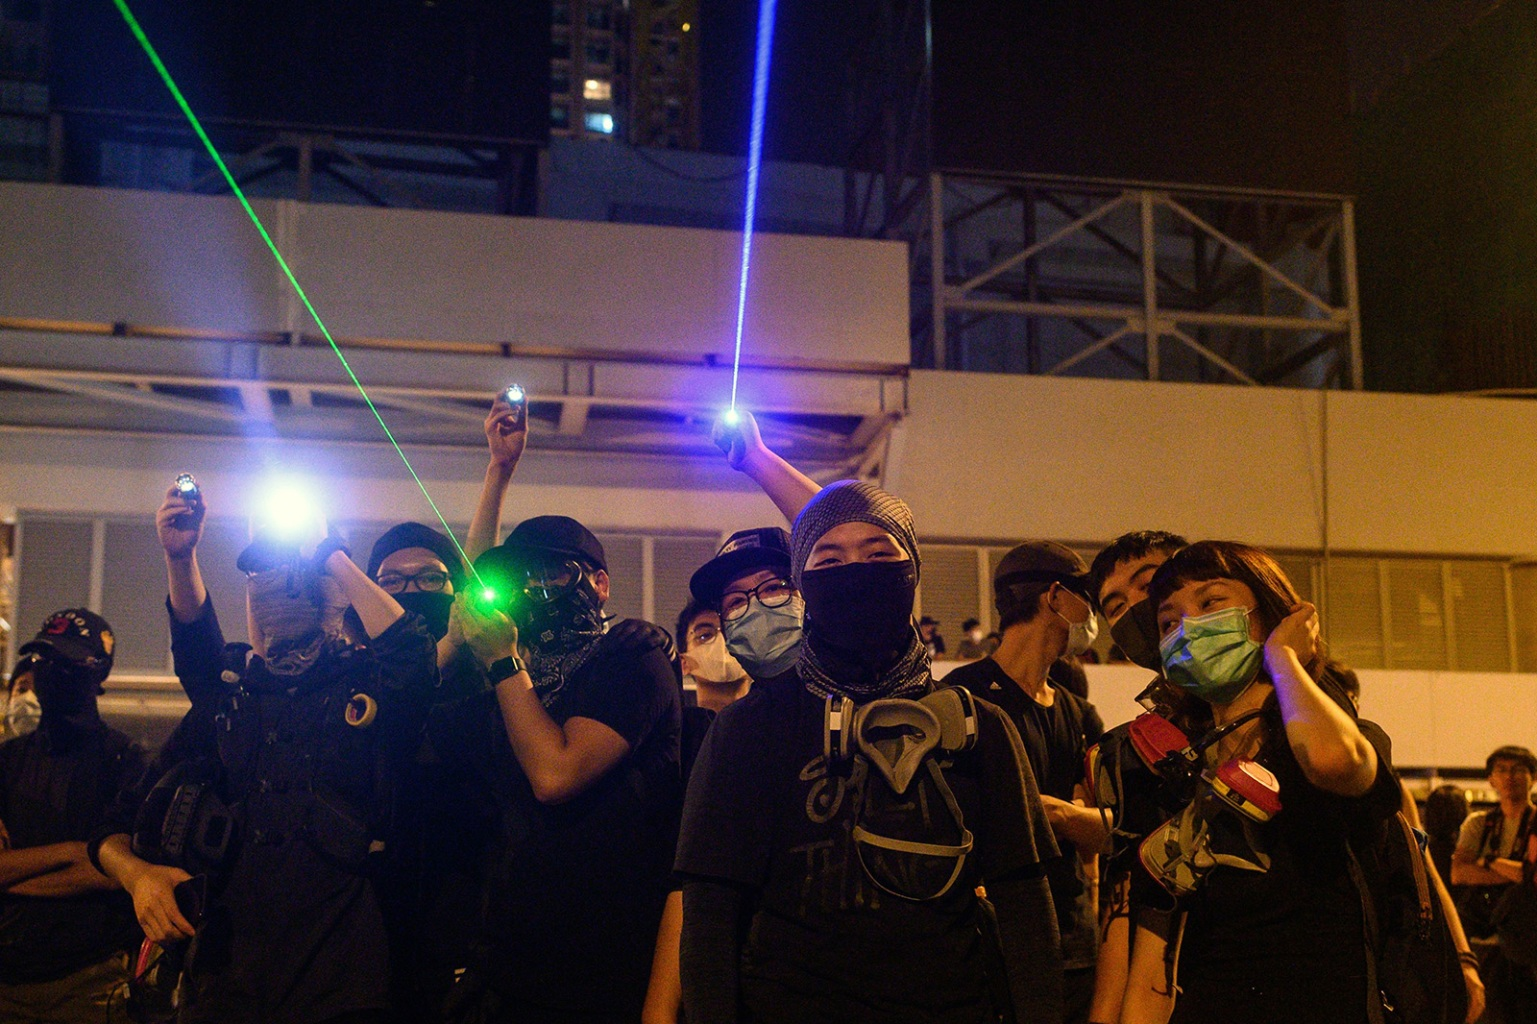 Protesters point laser beams toward the police outside the Yuen Long metro station during a protest in Hong Kong on Aug. 21. PHILIP FONG/AFP/Getty Images